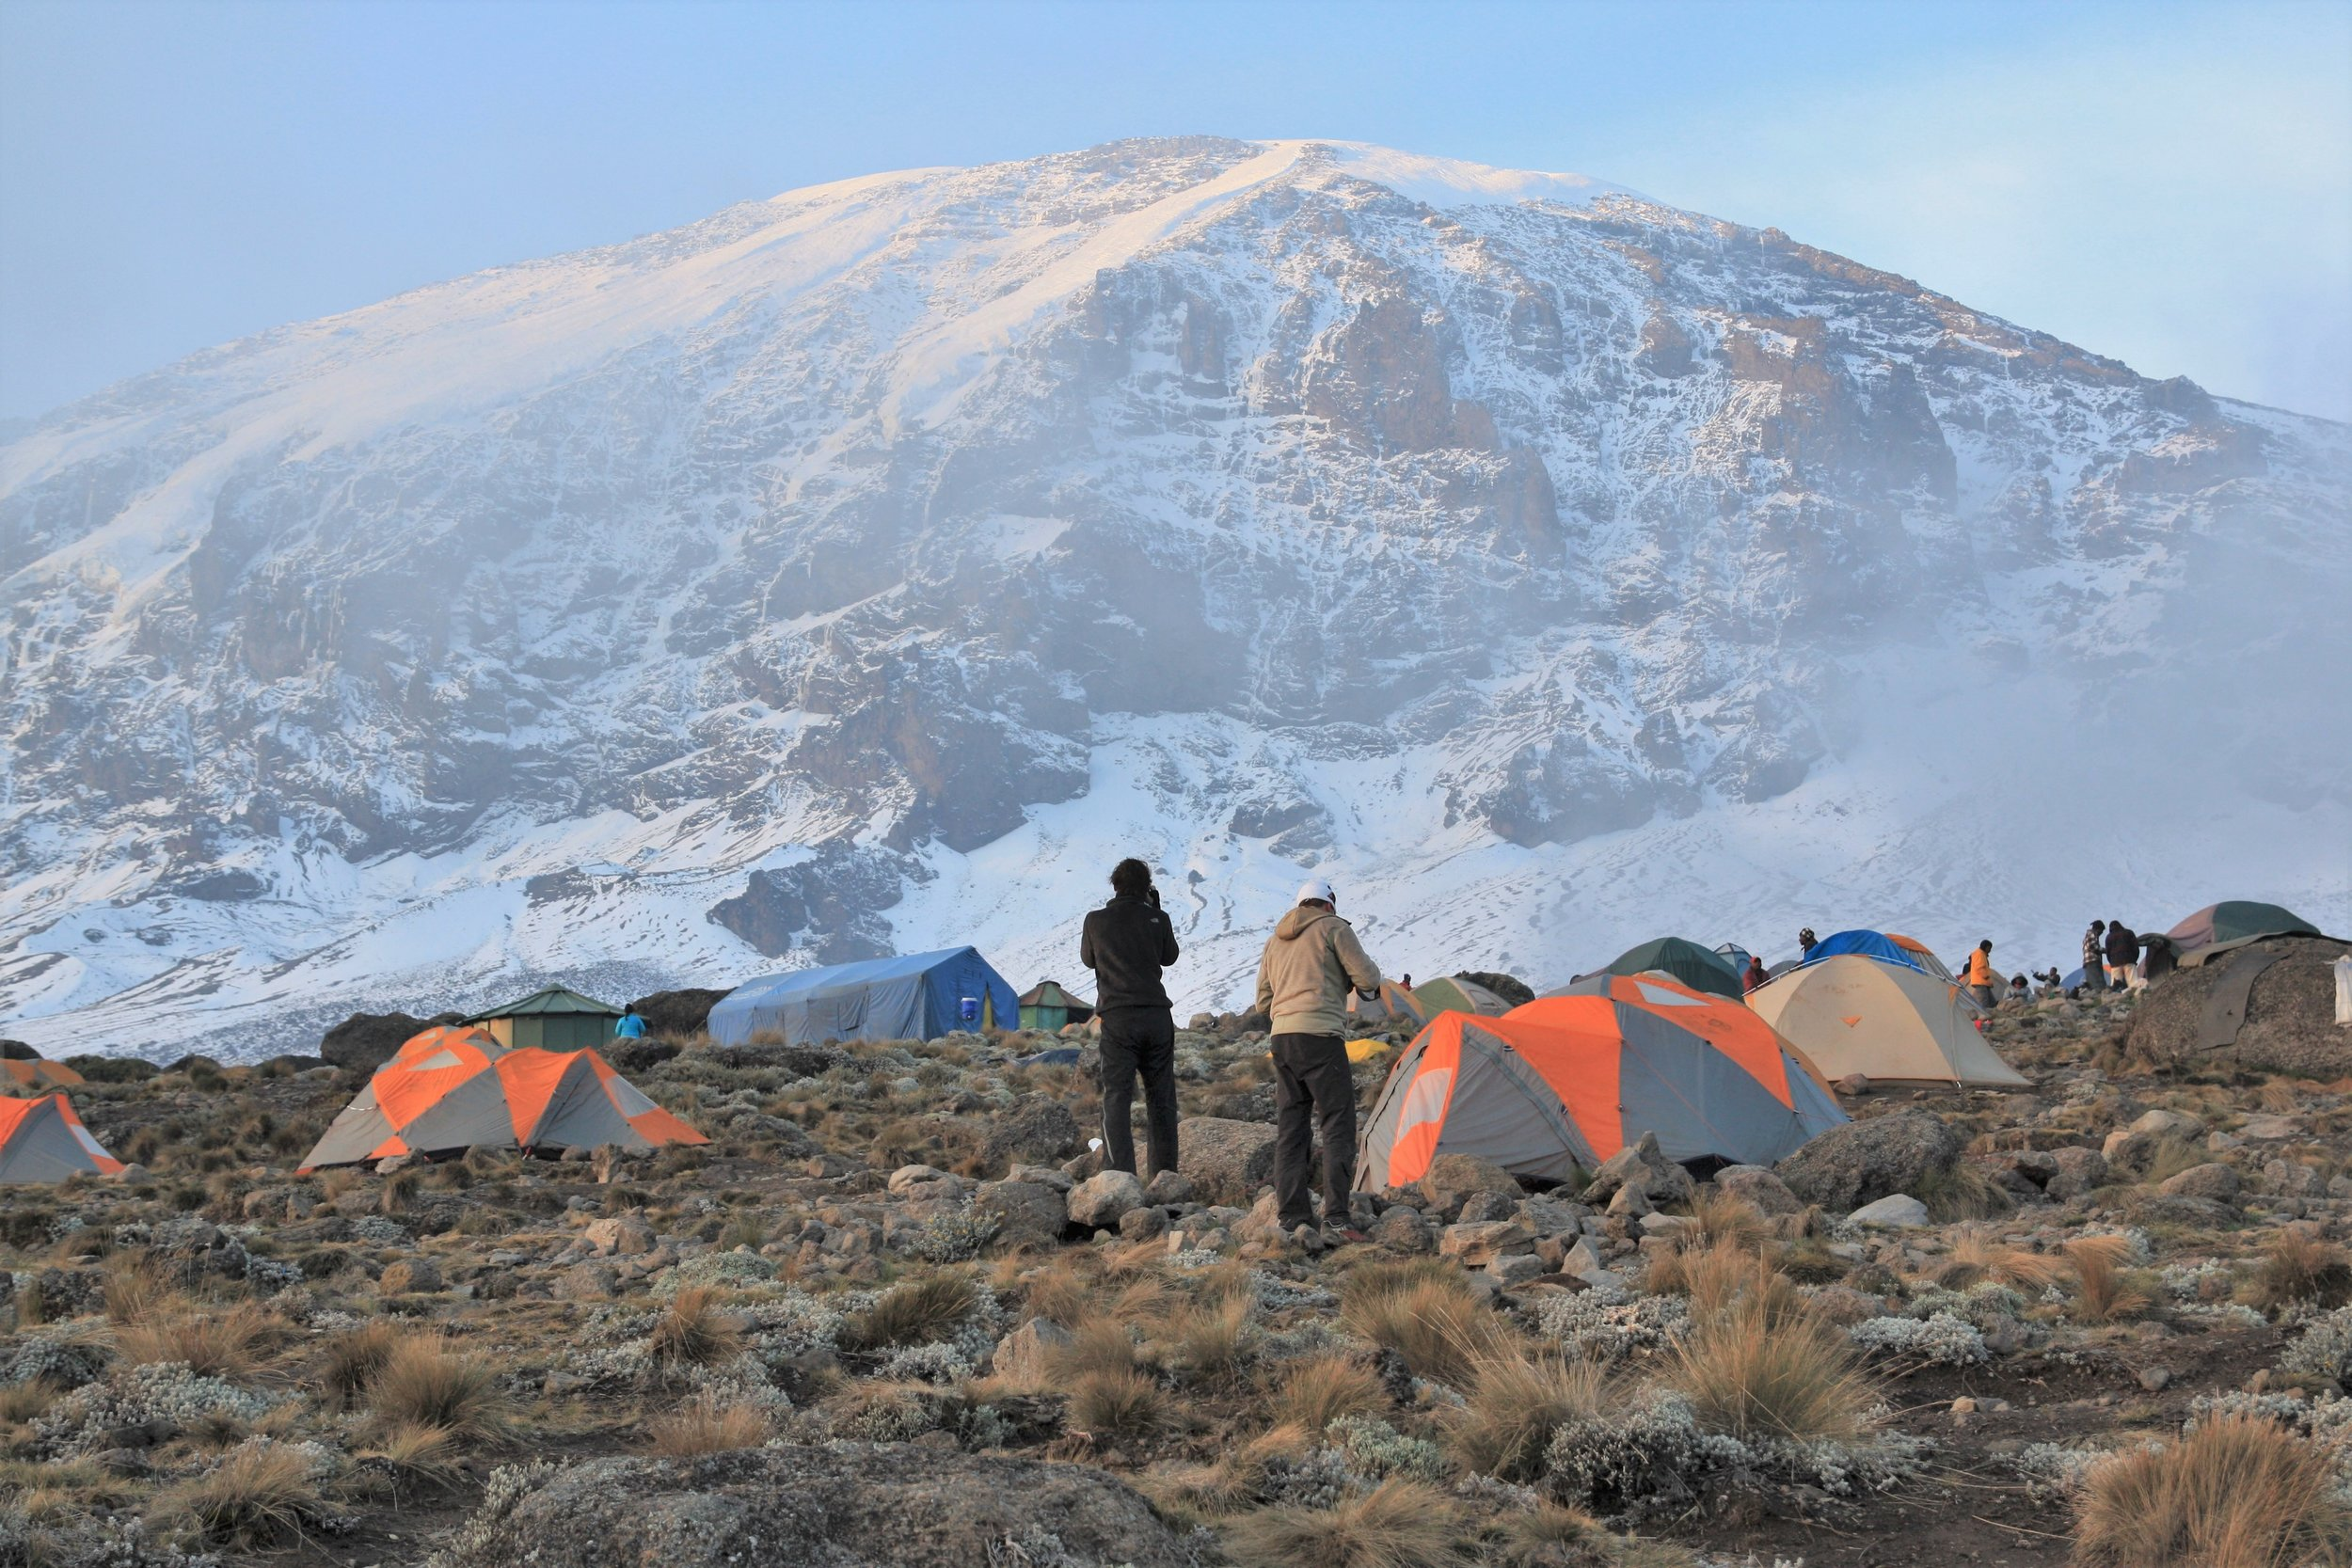 Approaching the summit of Mt. Kilimanjaro. Places like this have stayed essentially free from human impacts until recently, but the glaciers are fast disappearing. How long can the wilderness image survive this (not to mention the hordes of climbers)?